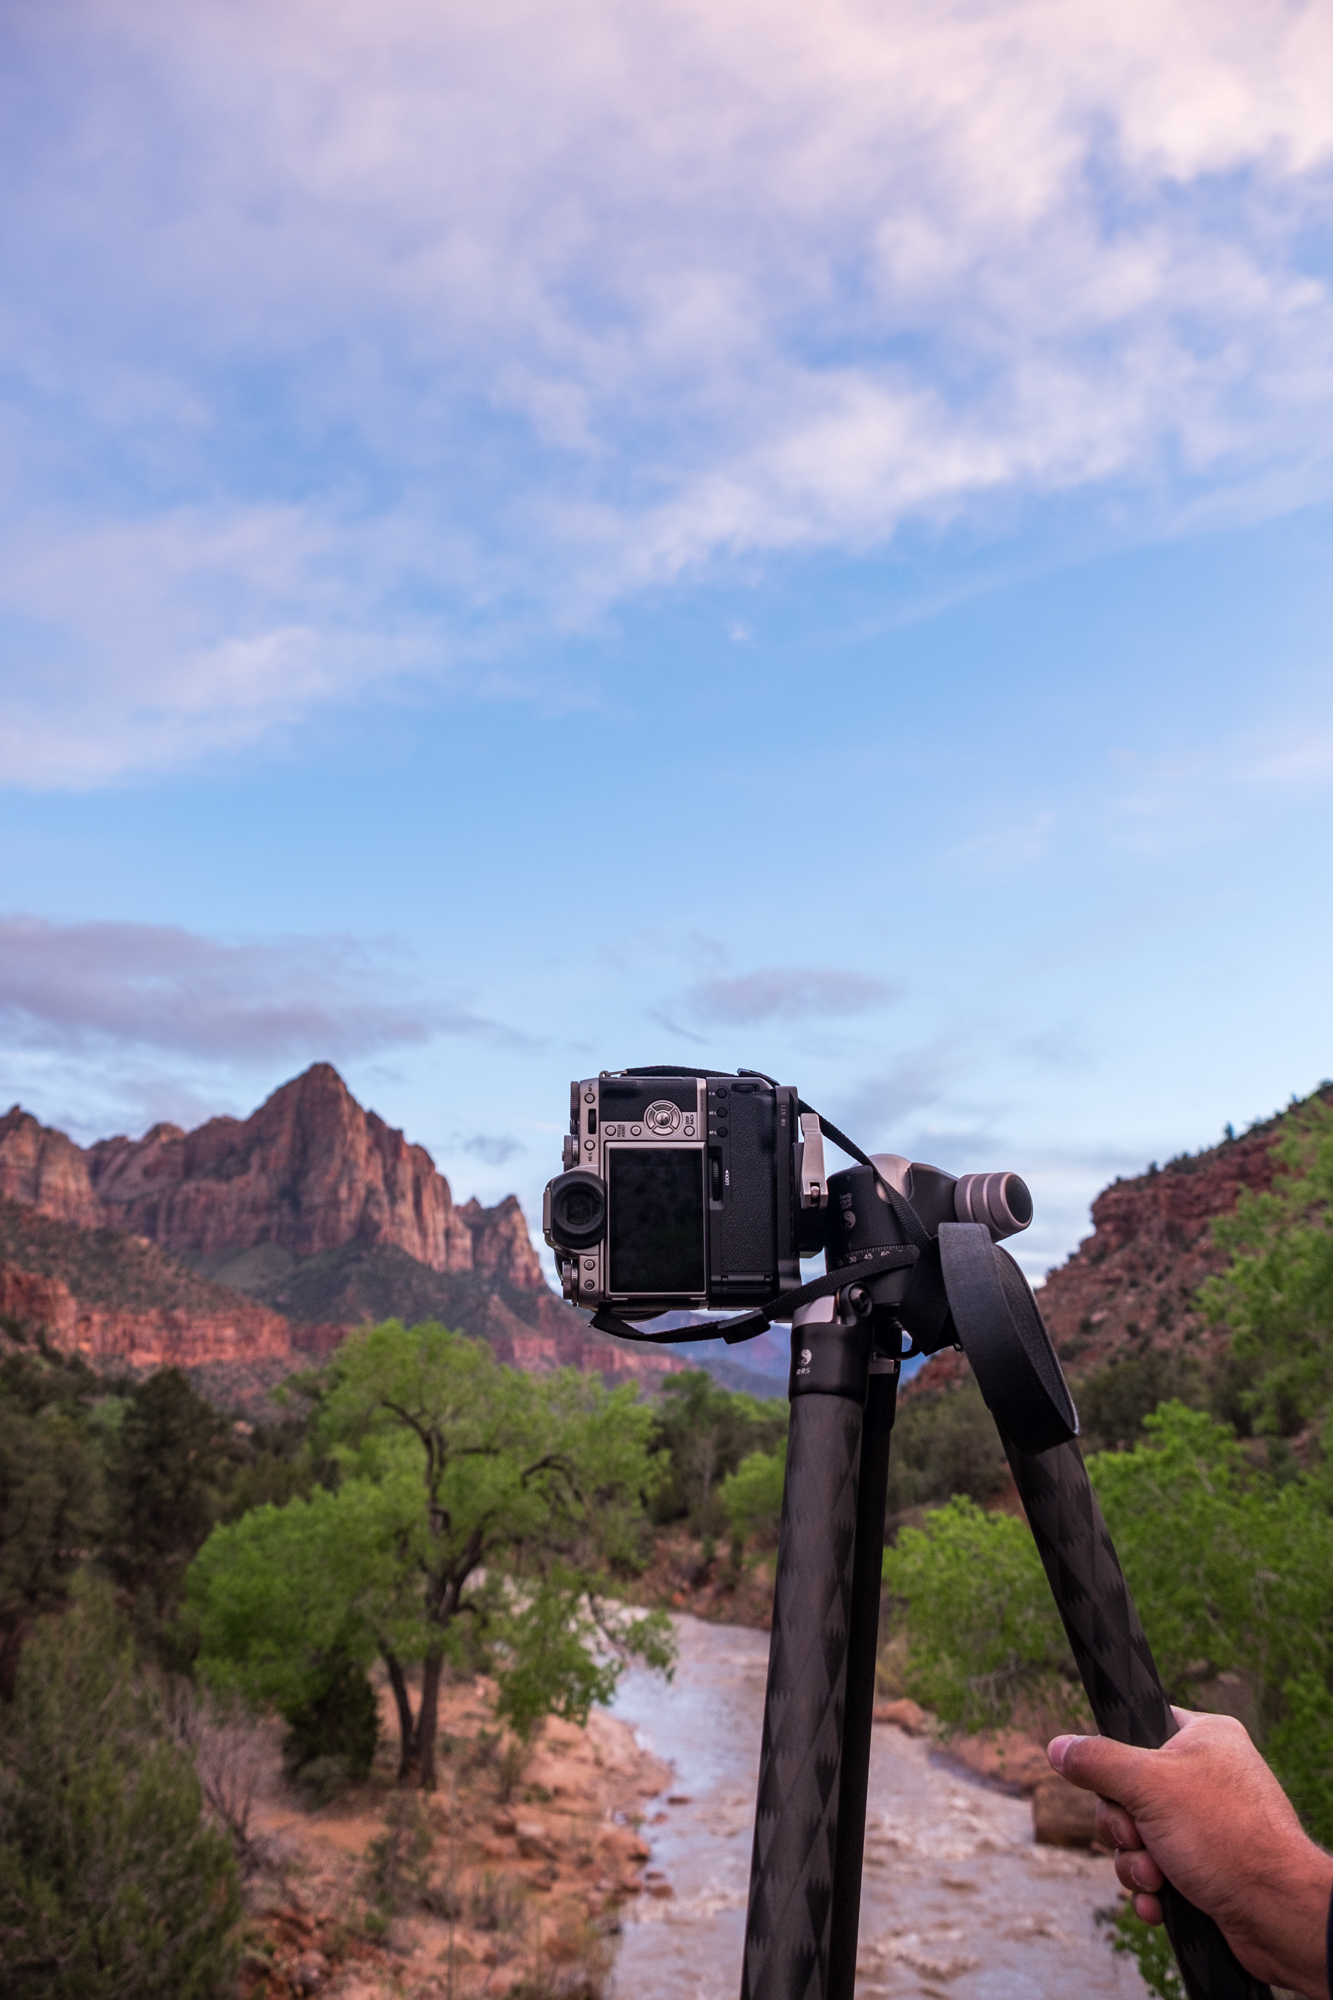 20160410-SP-Zion National Park-_DSF1181.jpg